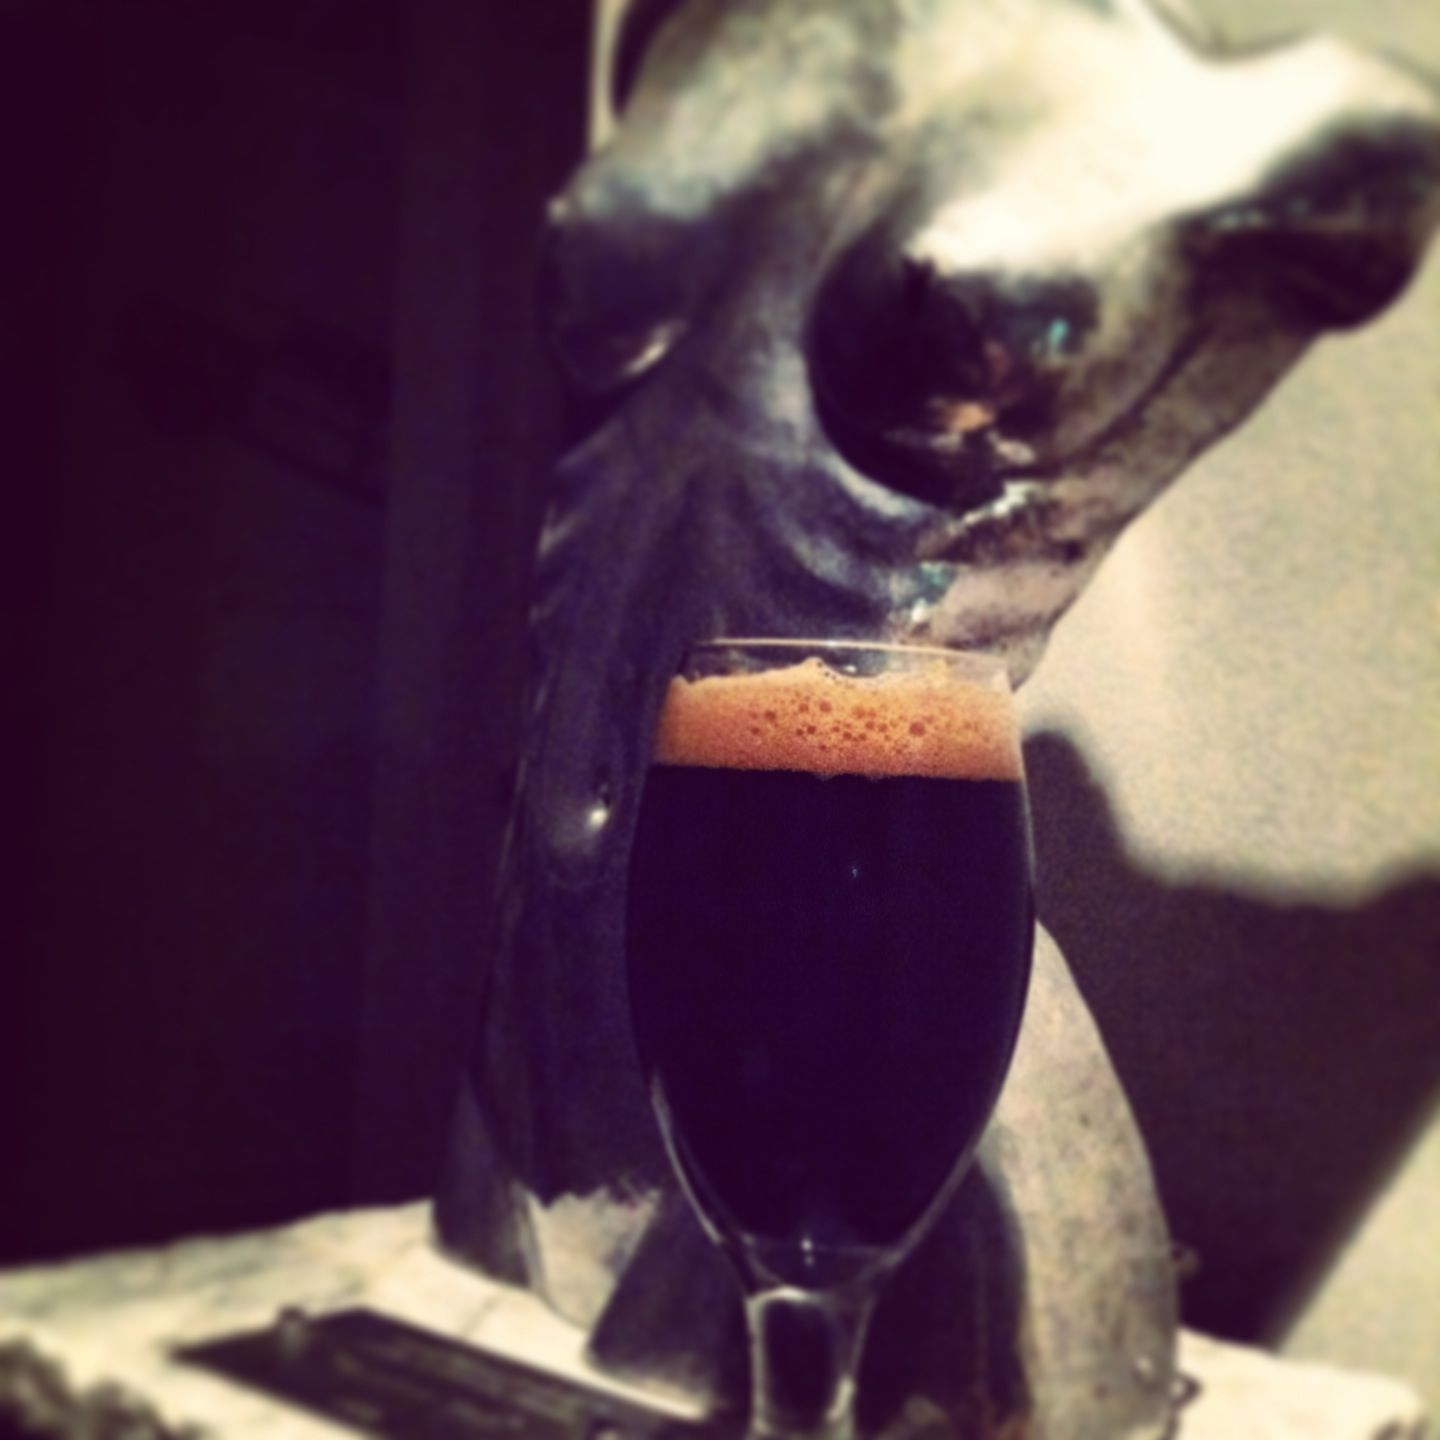 The beer and the bust. An imperial stout sits in honor of the hand hammered steel bust made by our friend artist Eddie Meeks.